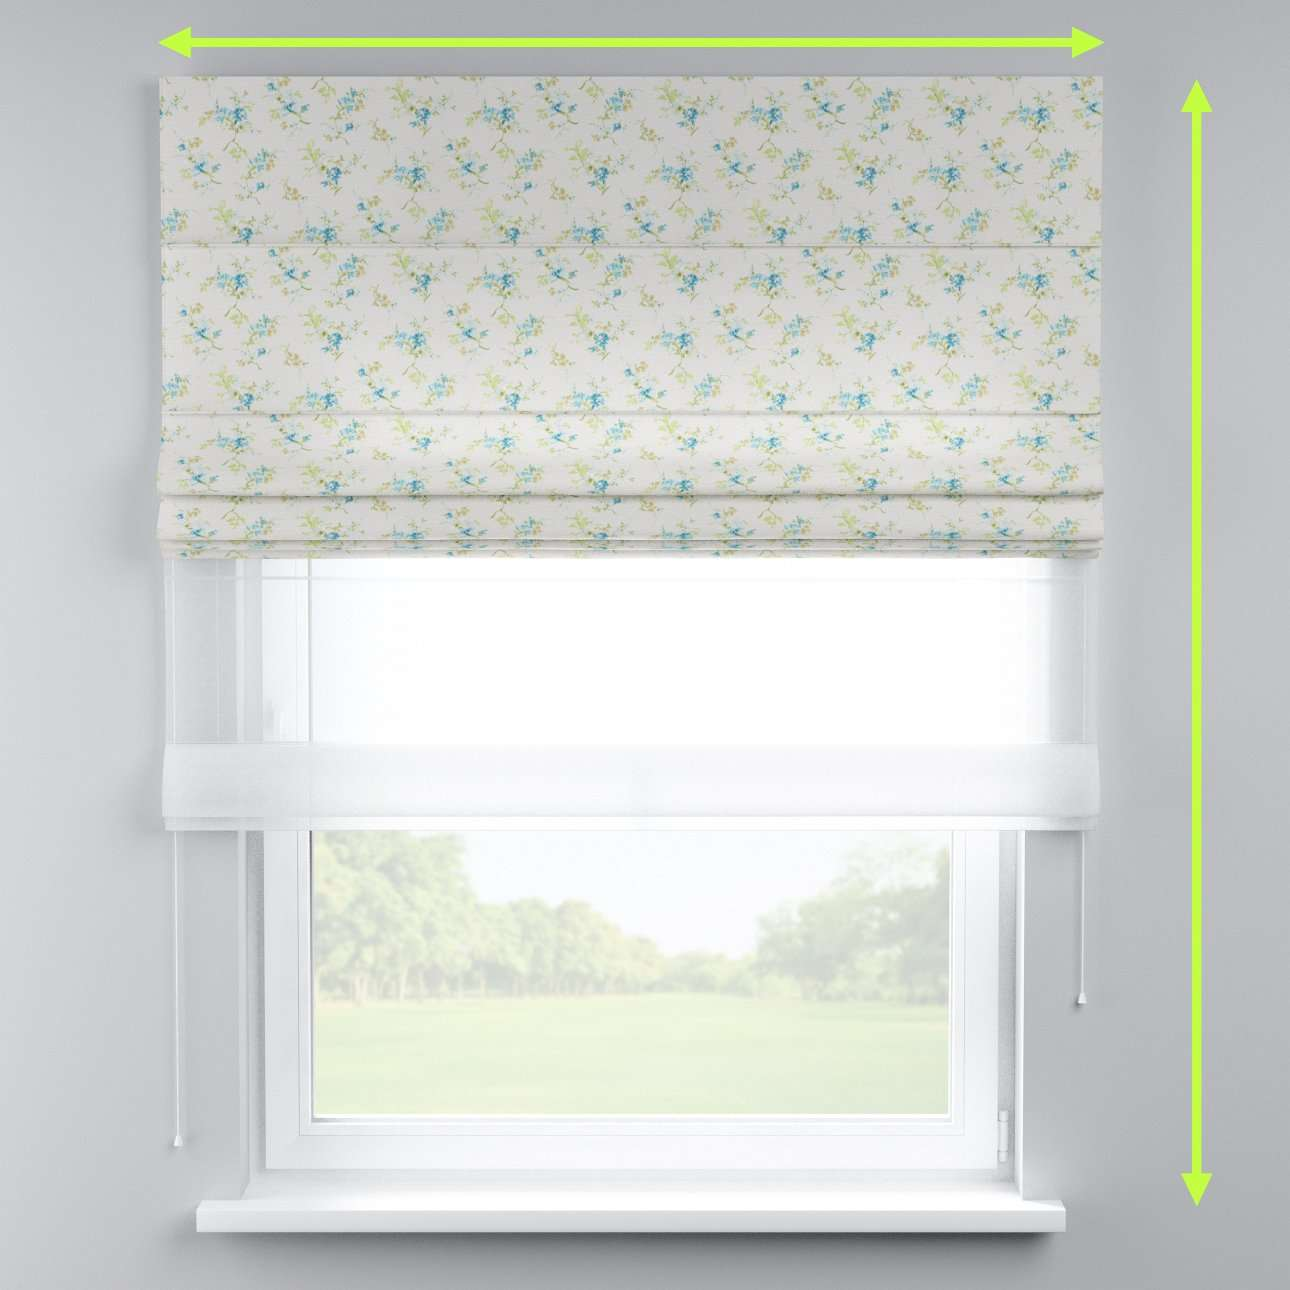 Voile and fabric roman blind (DUO II) in collection Mirella, fabric: 141-16